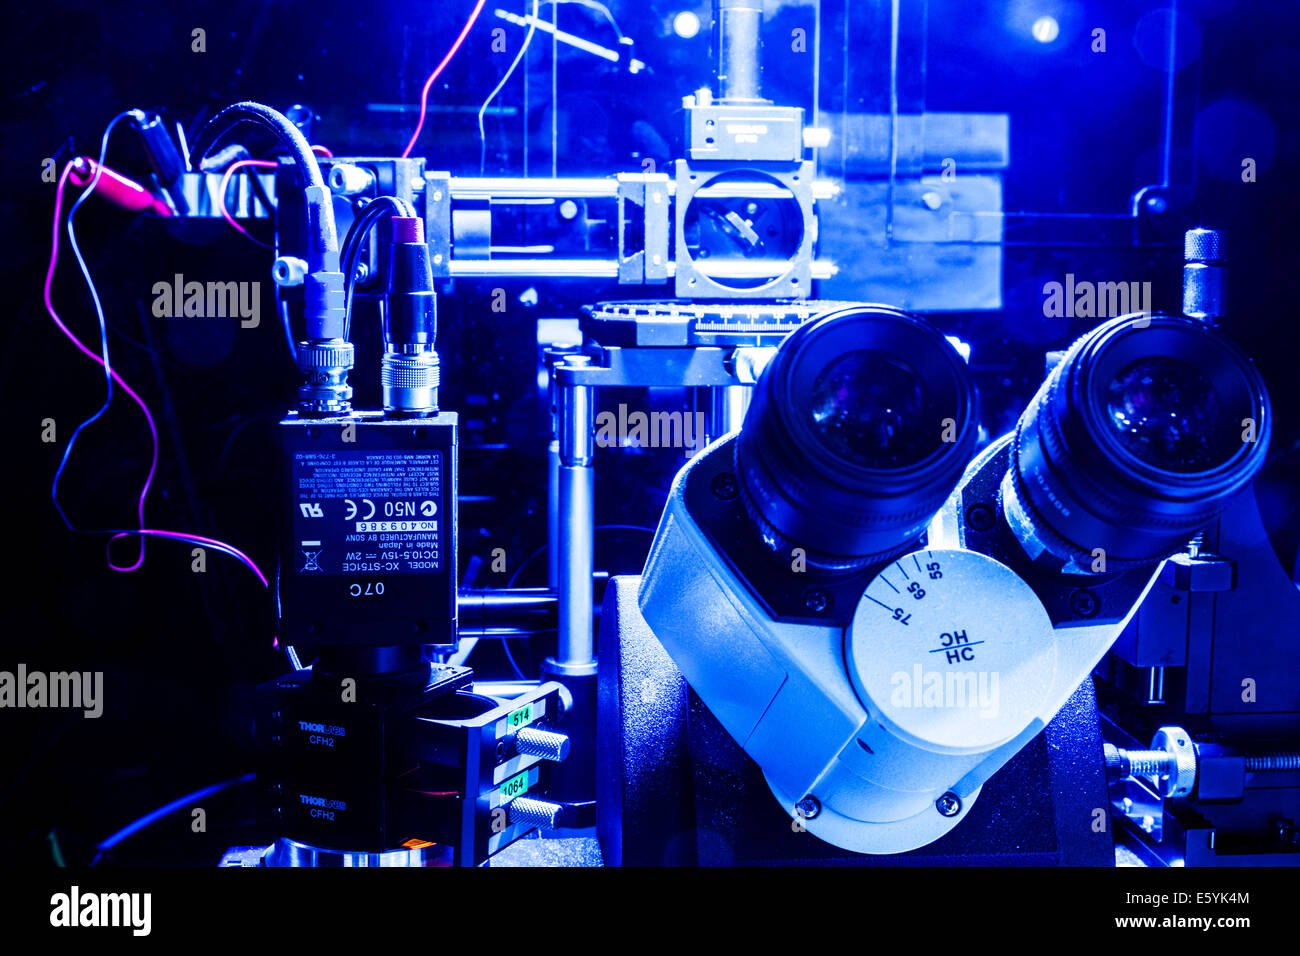 A laser scanning microscope and imaging system set up in a science research laboratory. - Stock Image